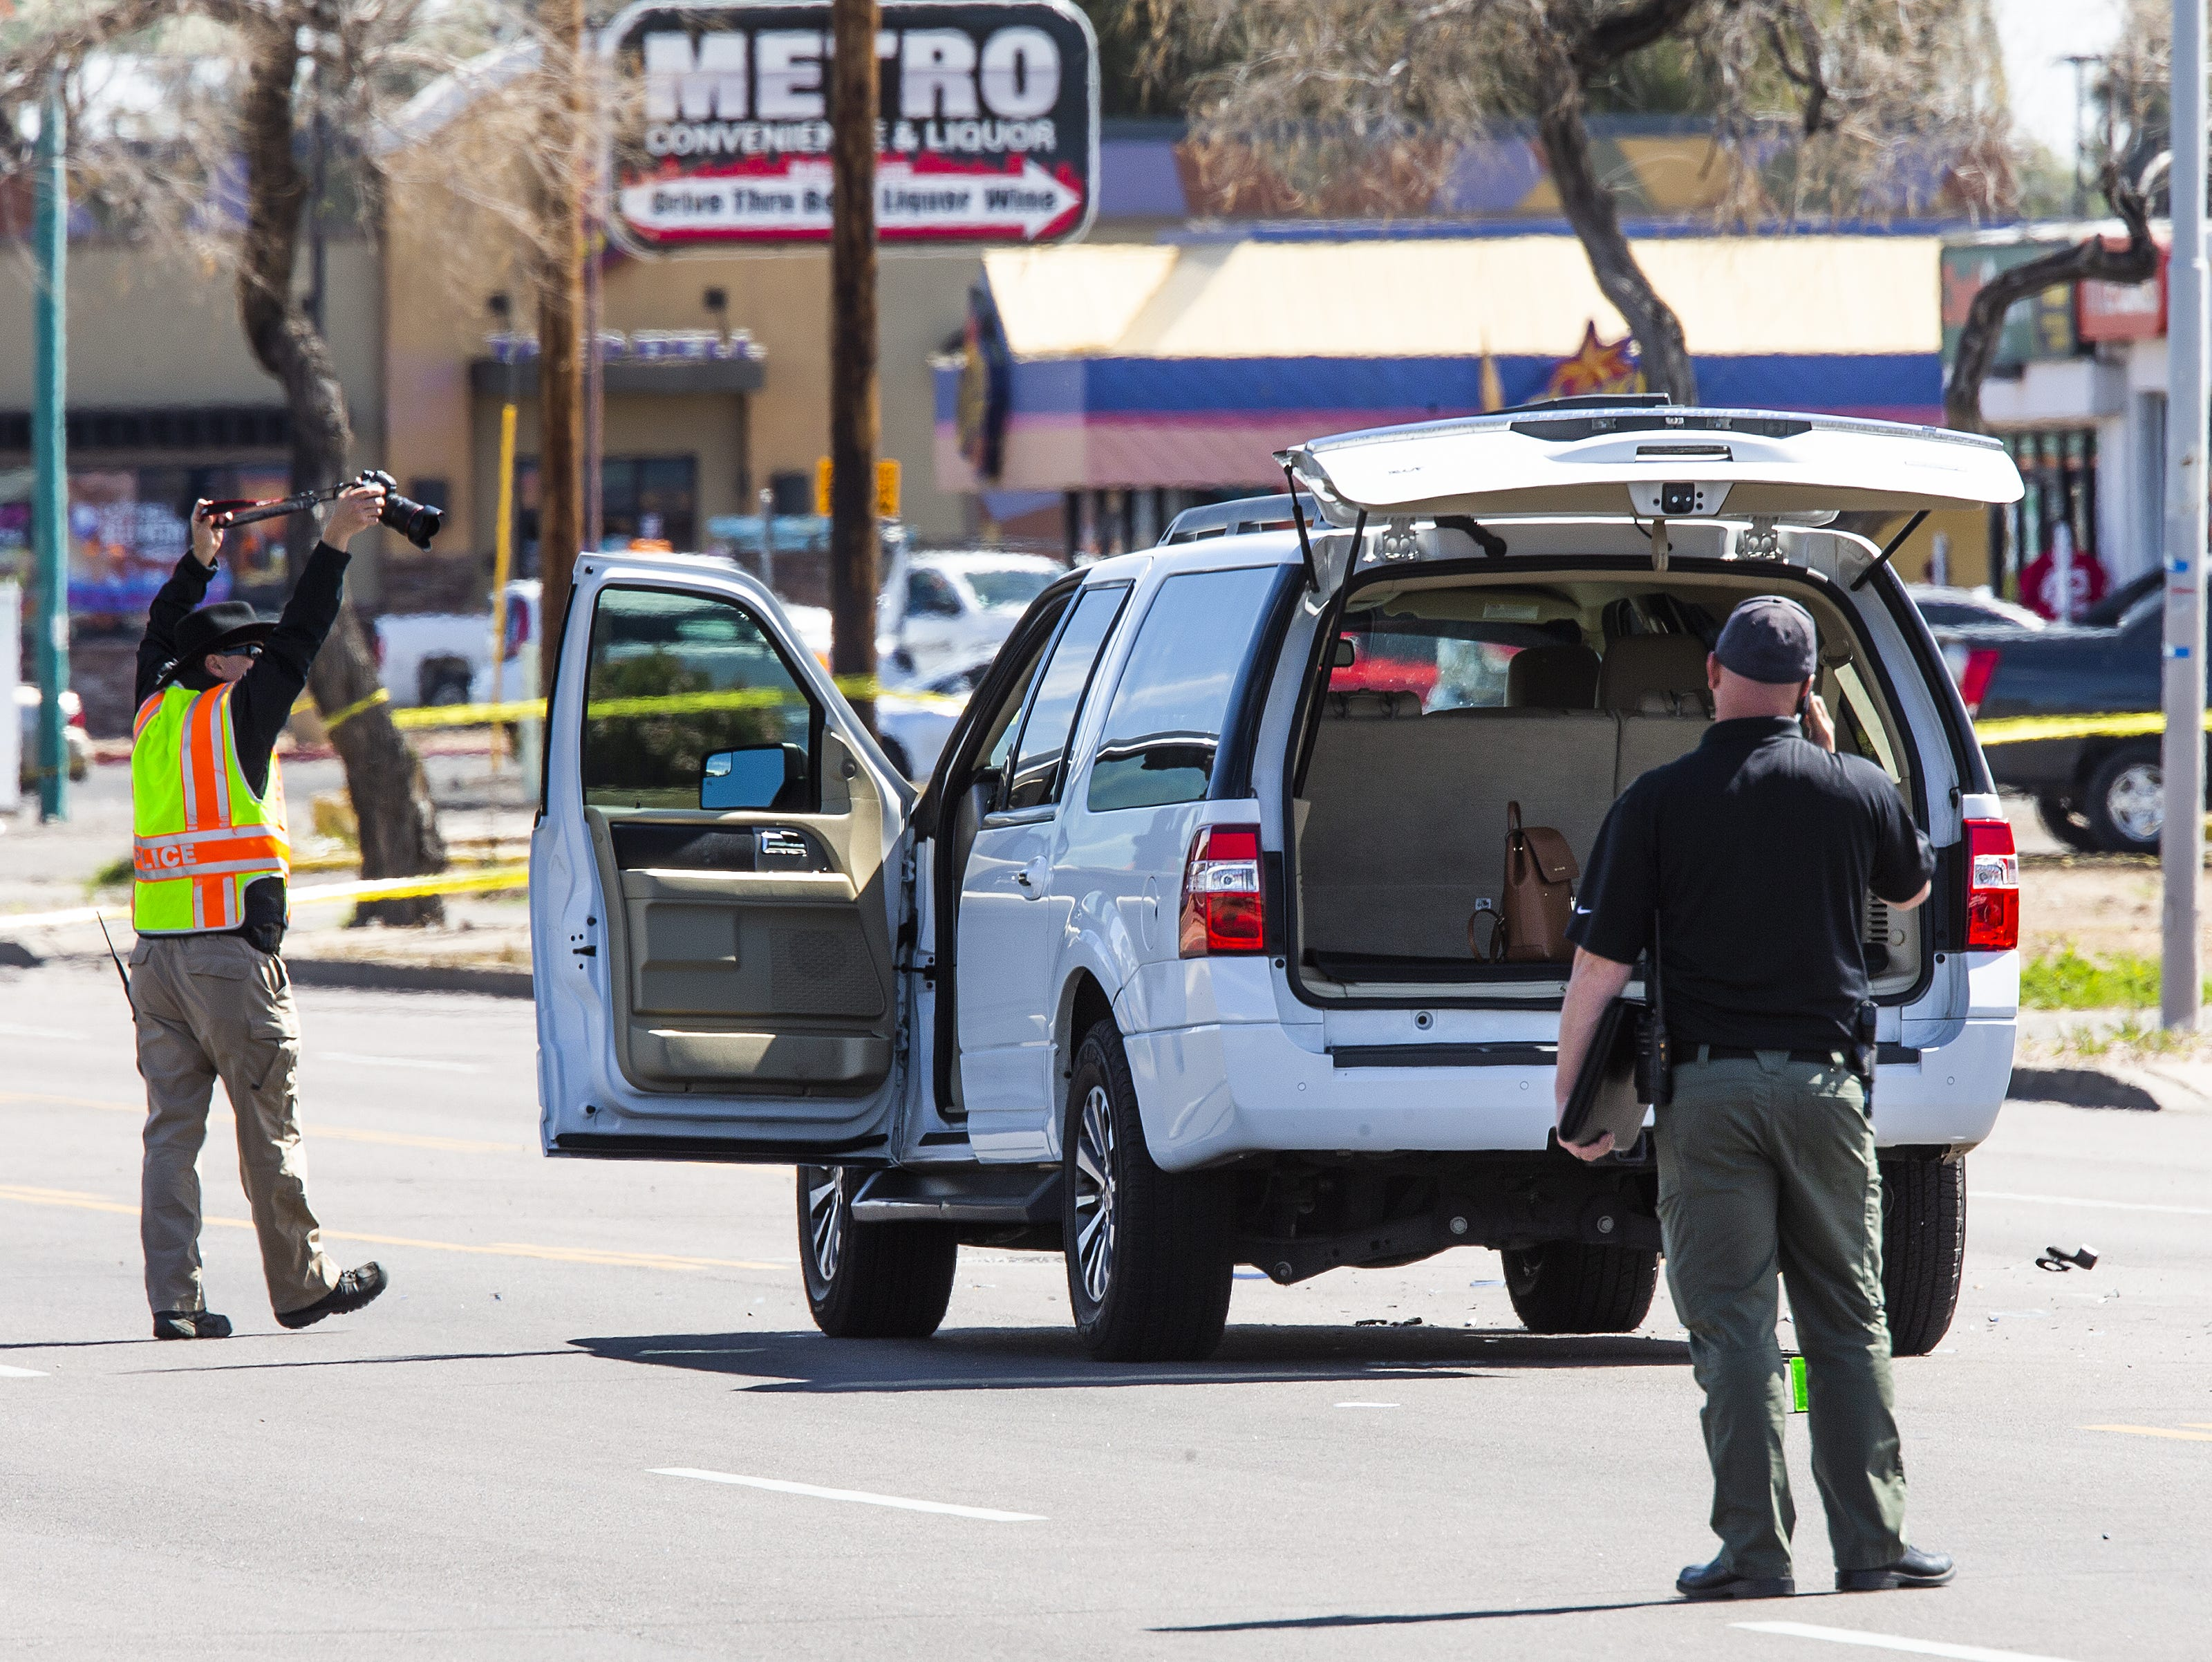 The scene at Indian School Road near 75th Avenue in Phoenix on March 21, 2019, where a Phoenix police officer was struck while investigating a crash. He later died from the injuries.